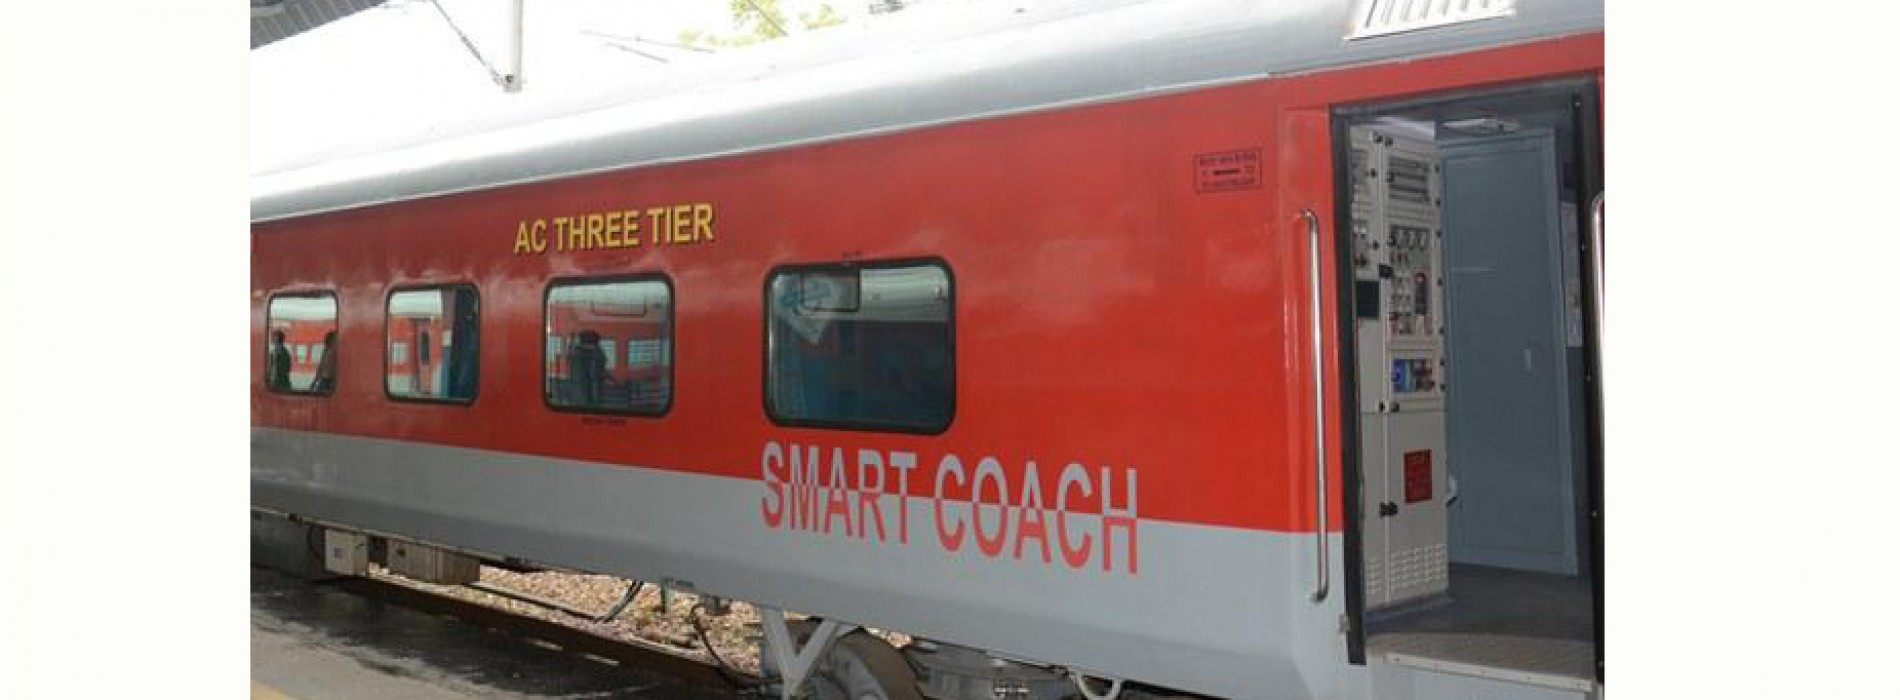 Indian Railways unveils country's 1st smart coach